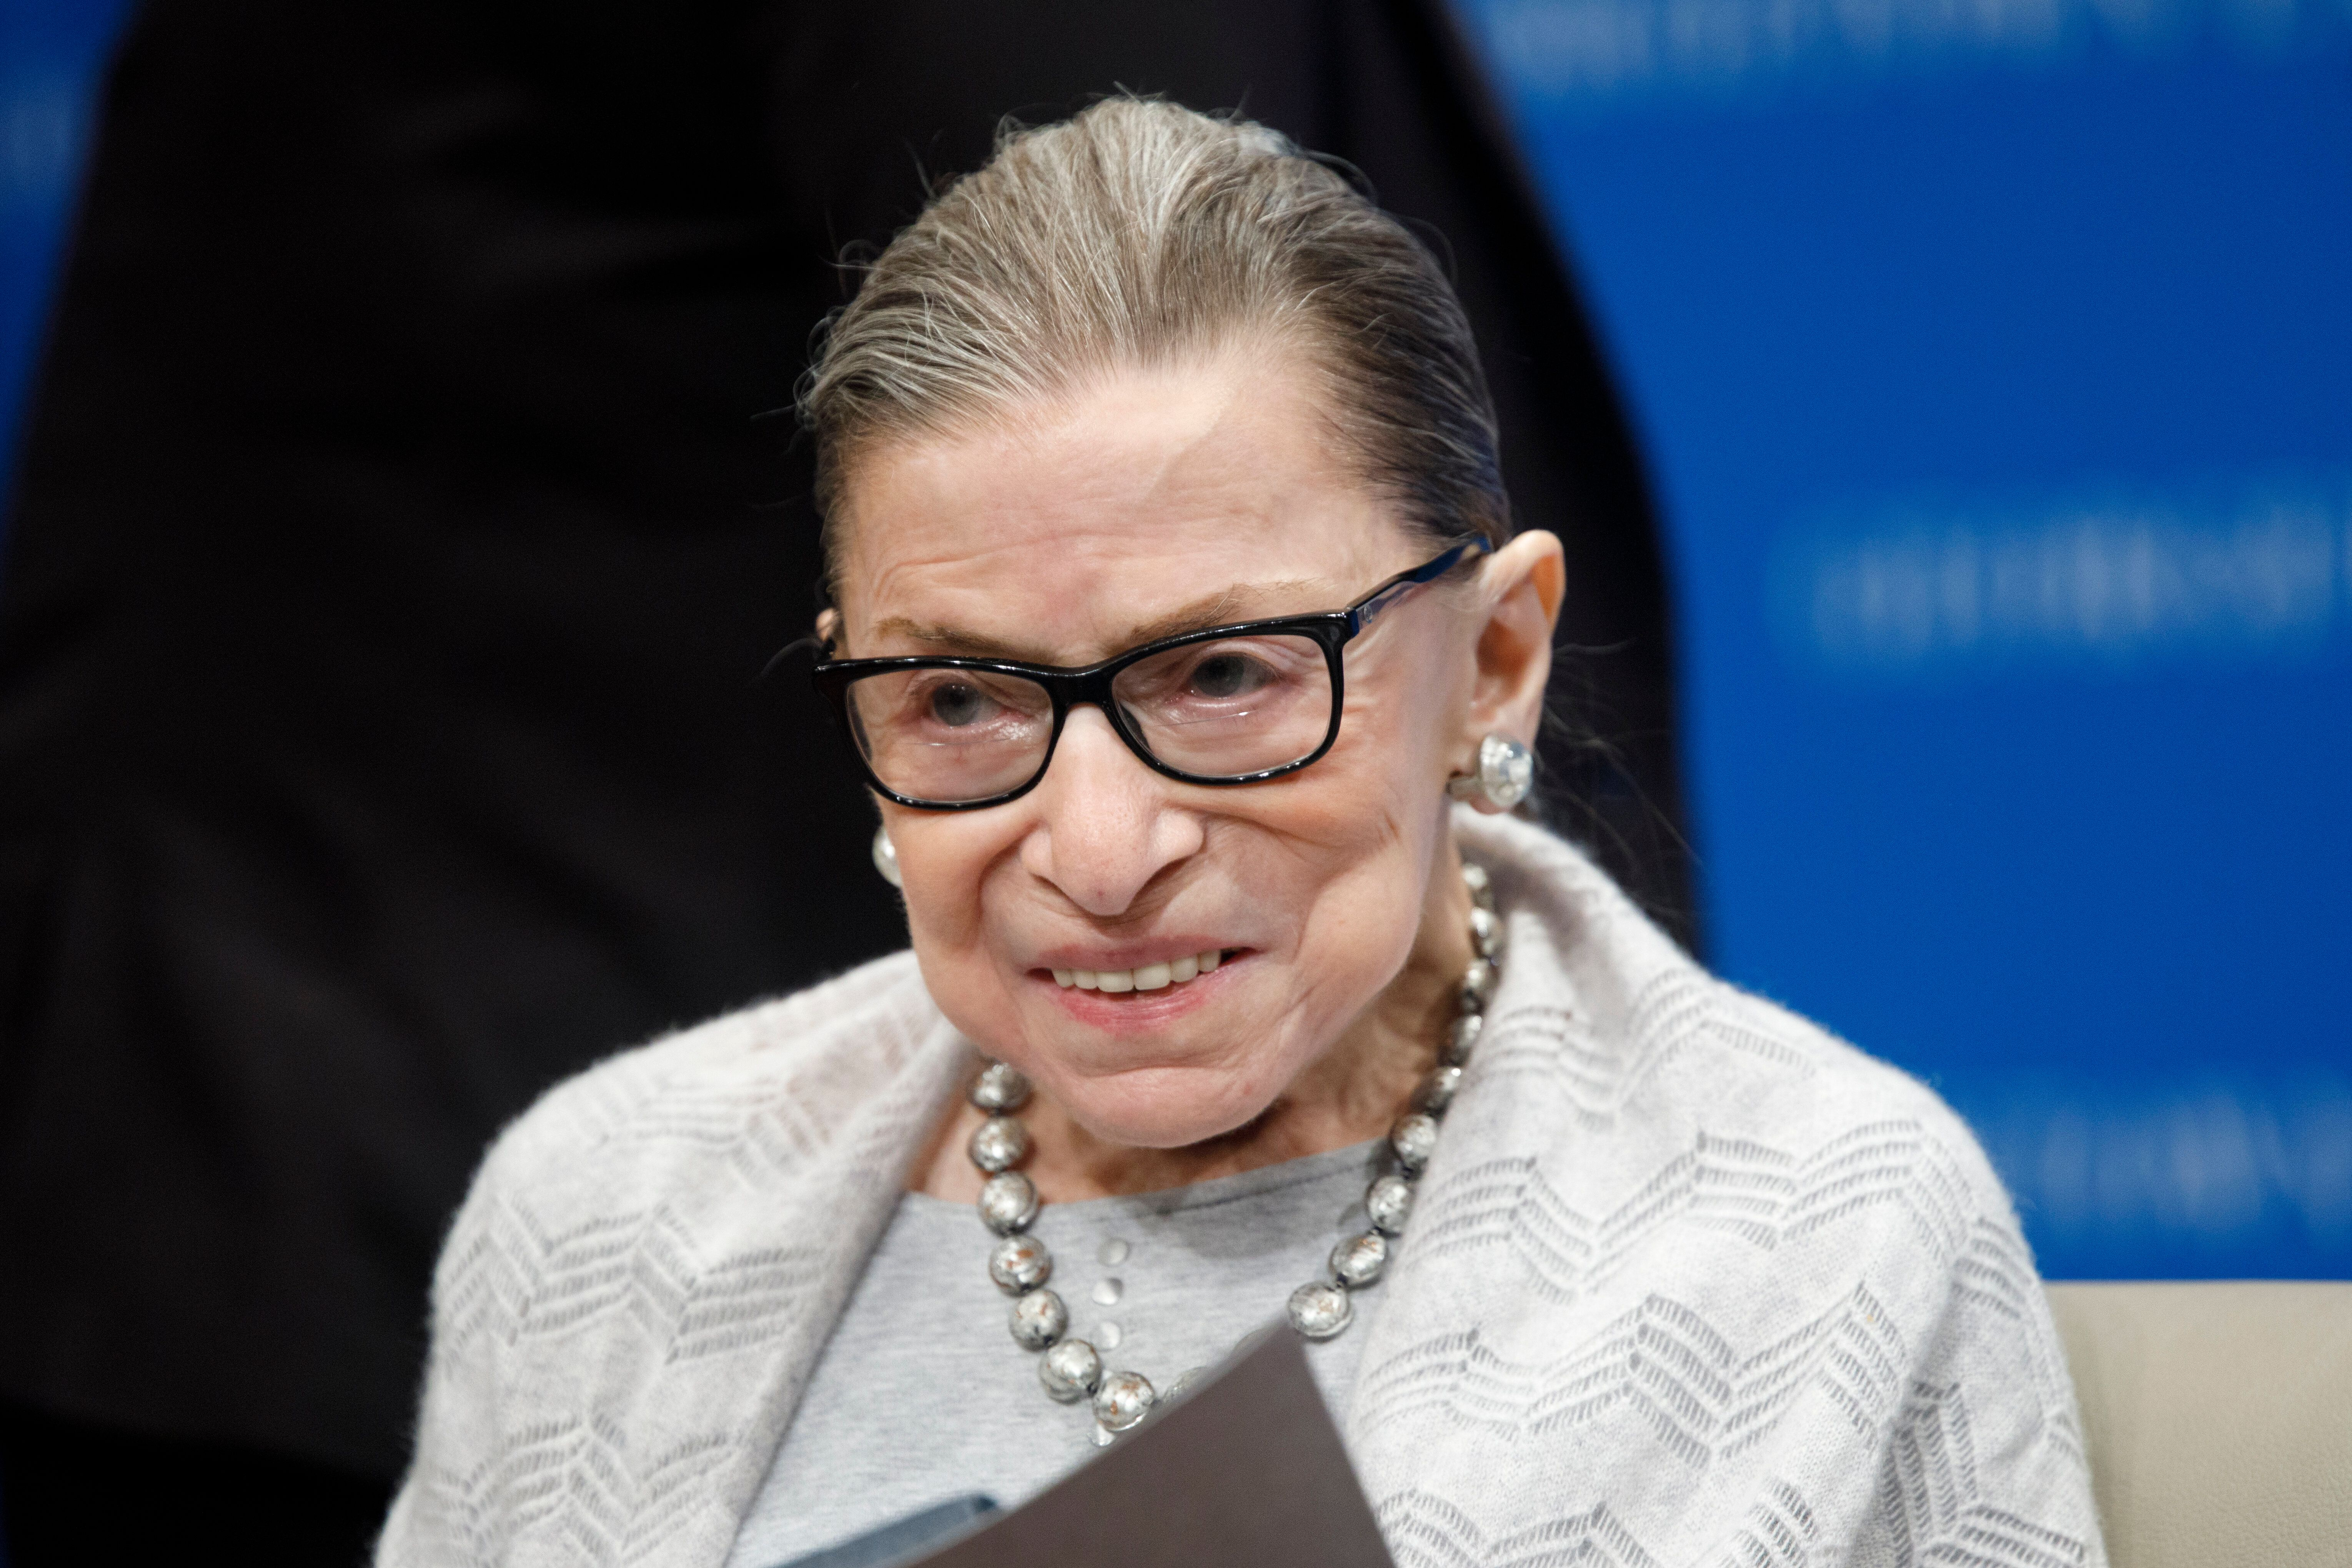 Supreme Court Justice Ruth Bader Ginsburg was a native of Brooklyn, New York, and the city plans to honor her.